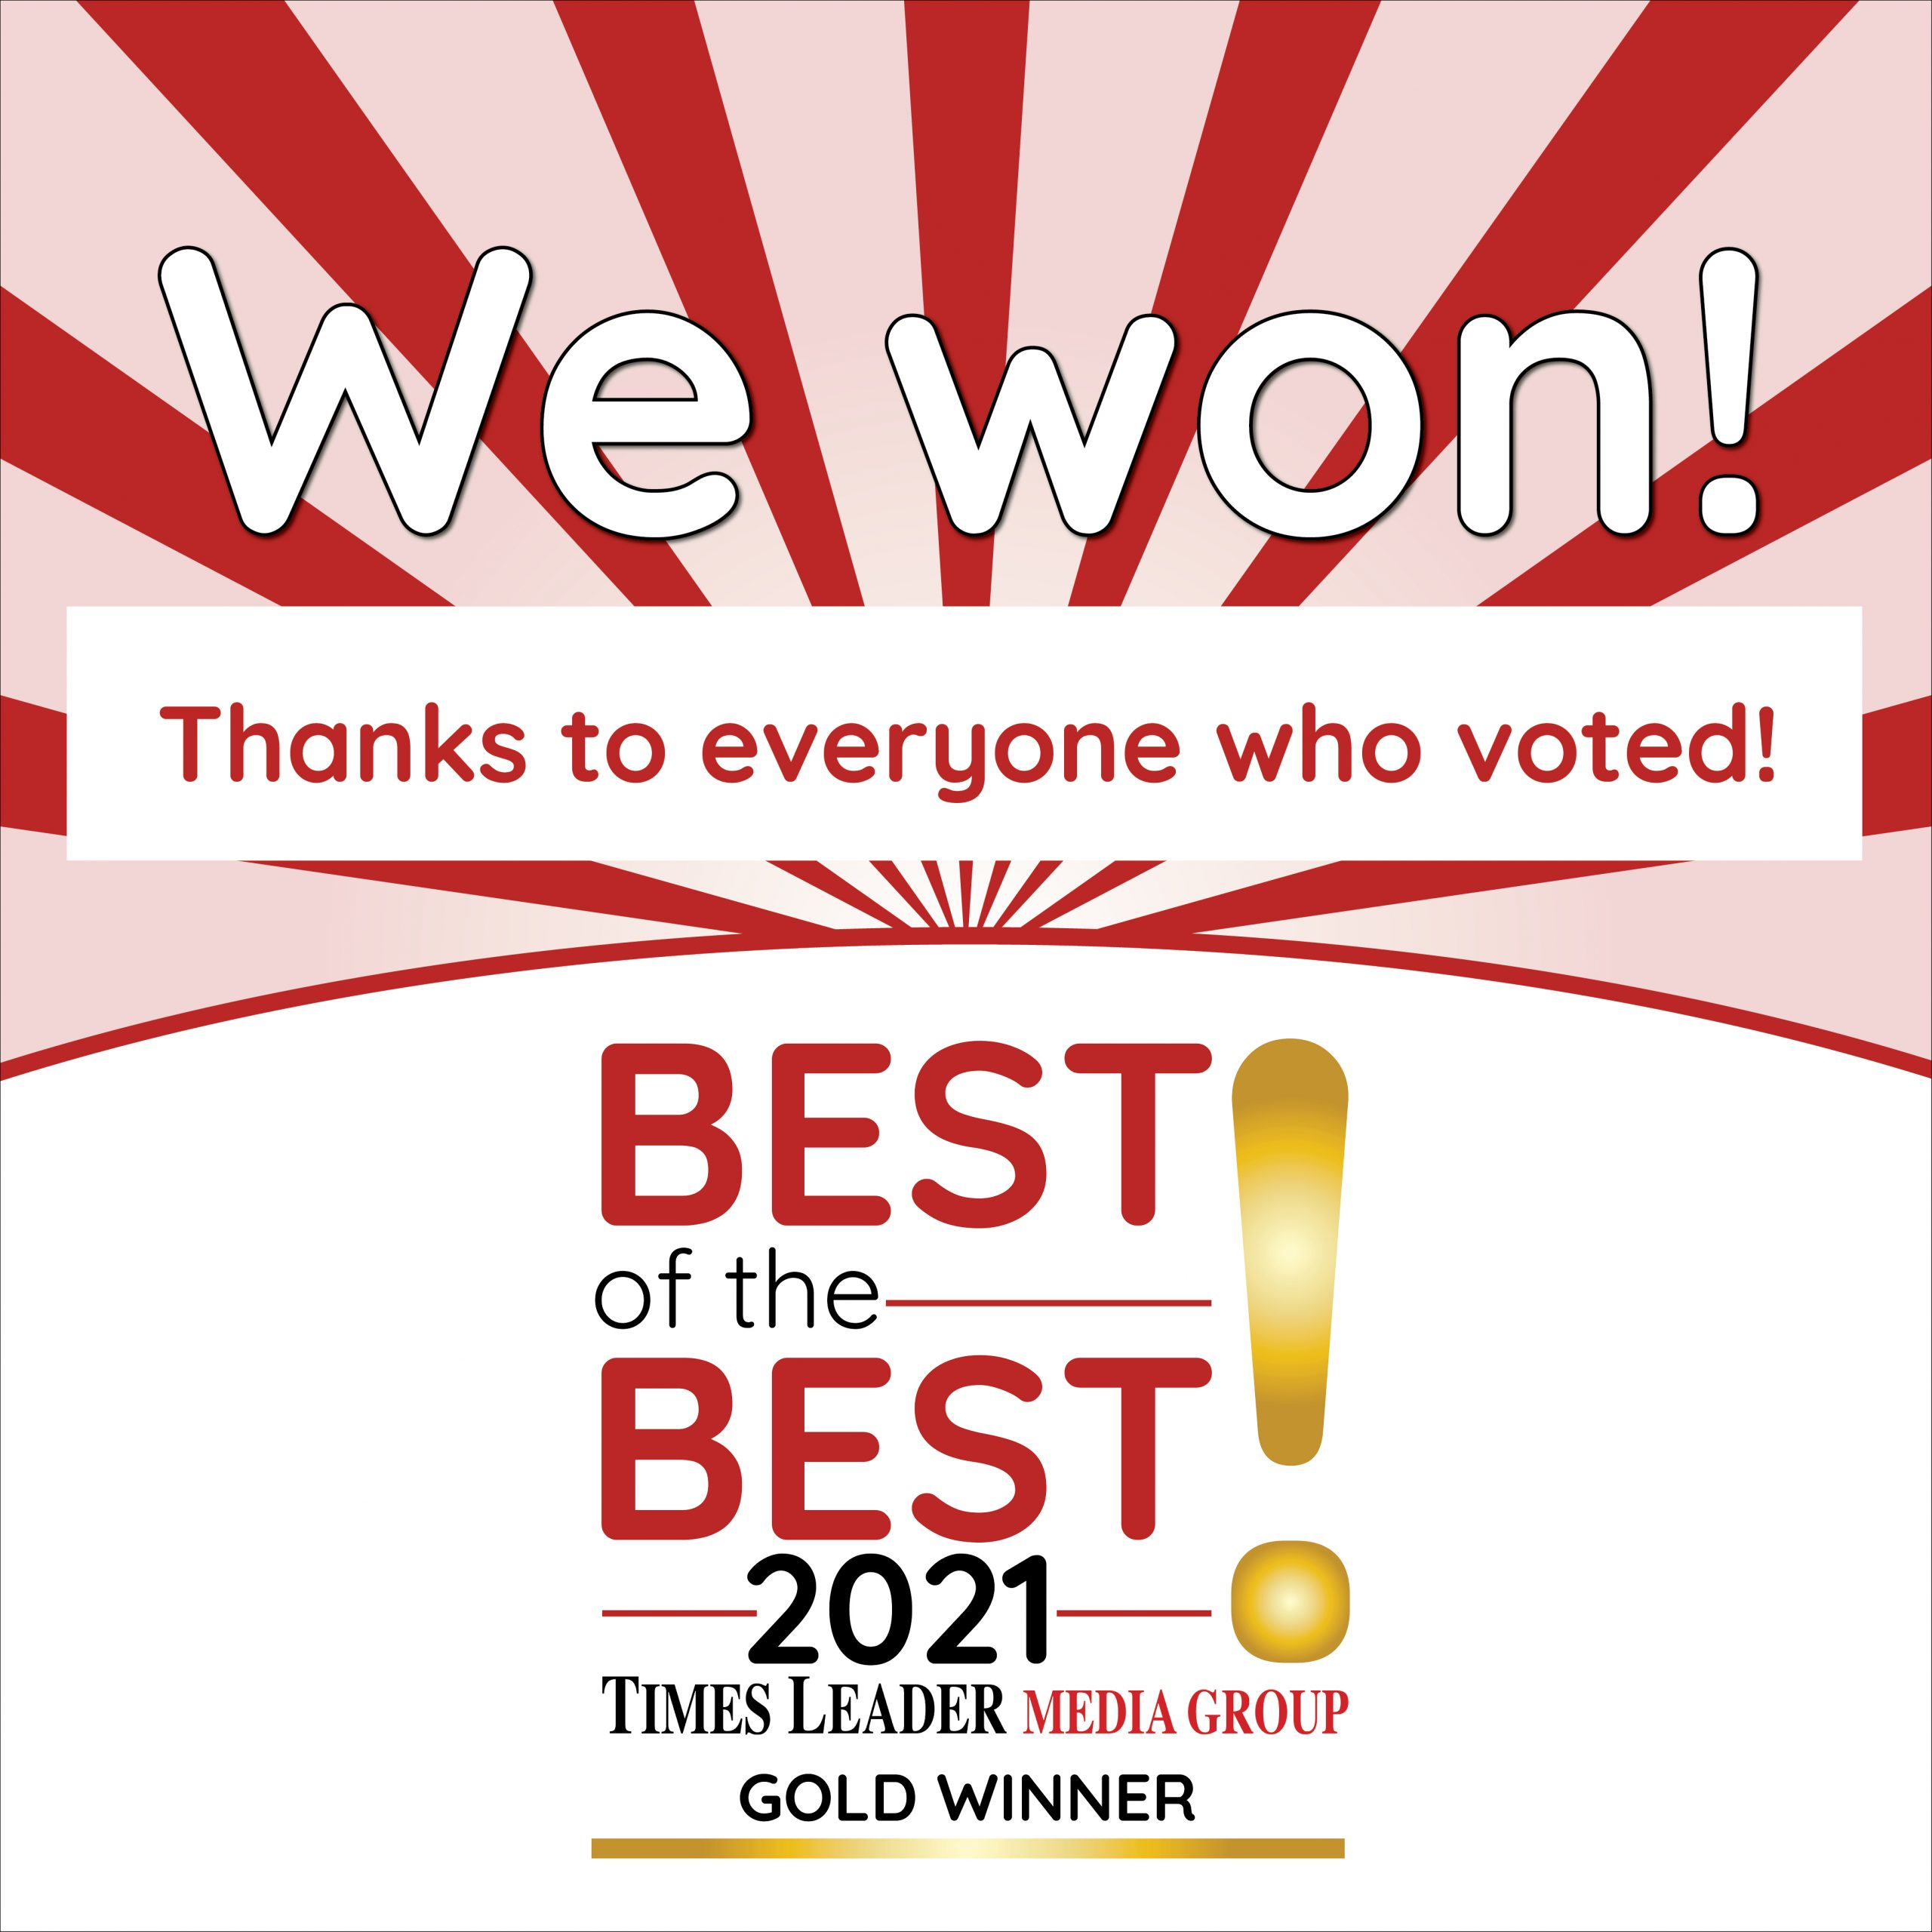 You are currently viewing Dr. Brown won the Gold and LVDA won the Silver in the Times Leader Best of the Best Promotion